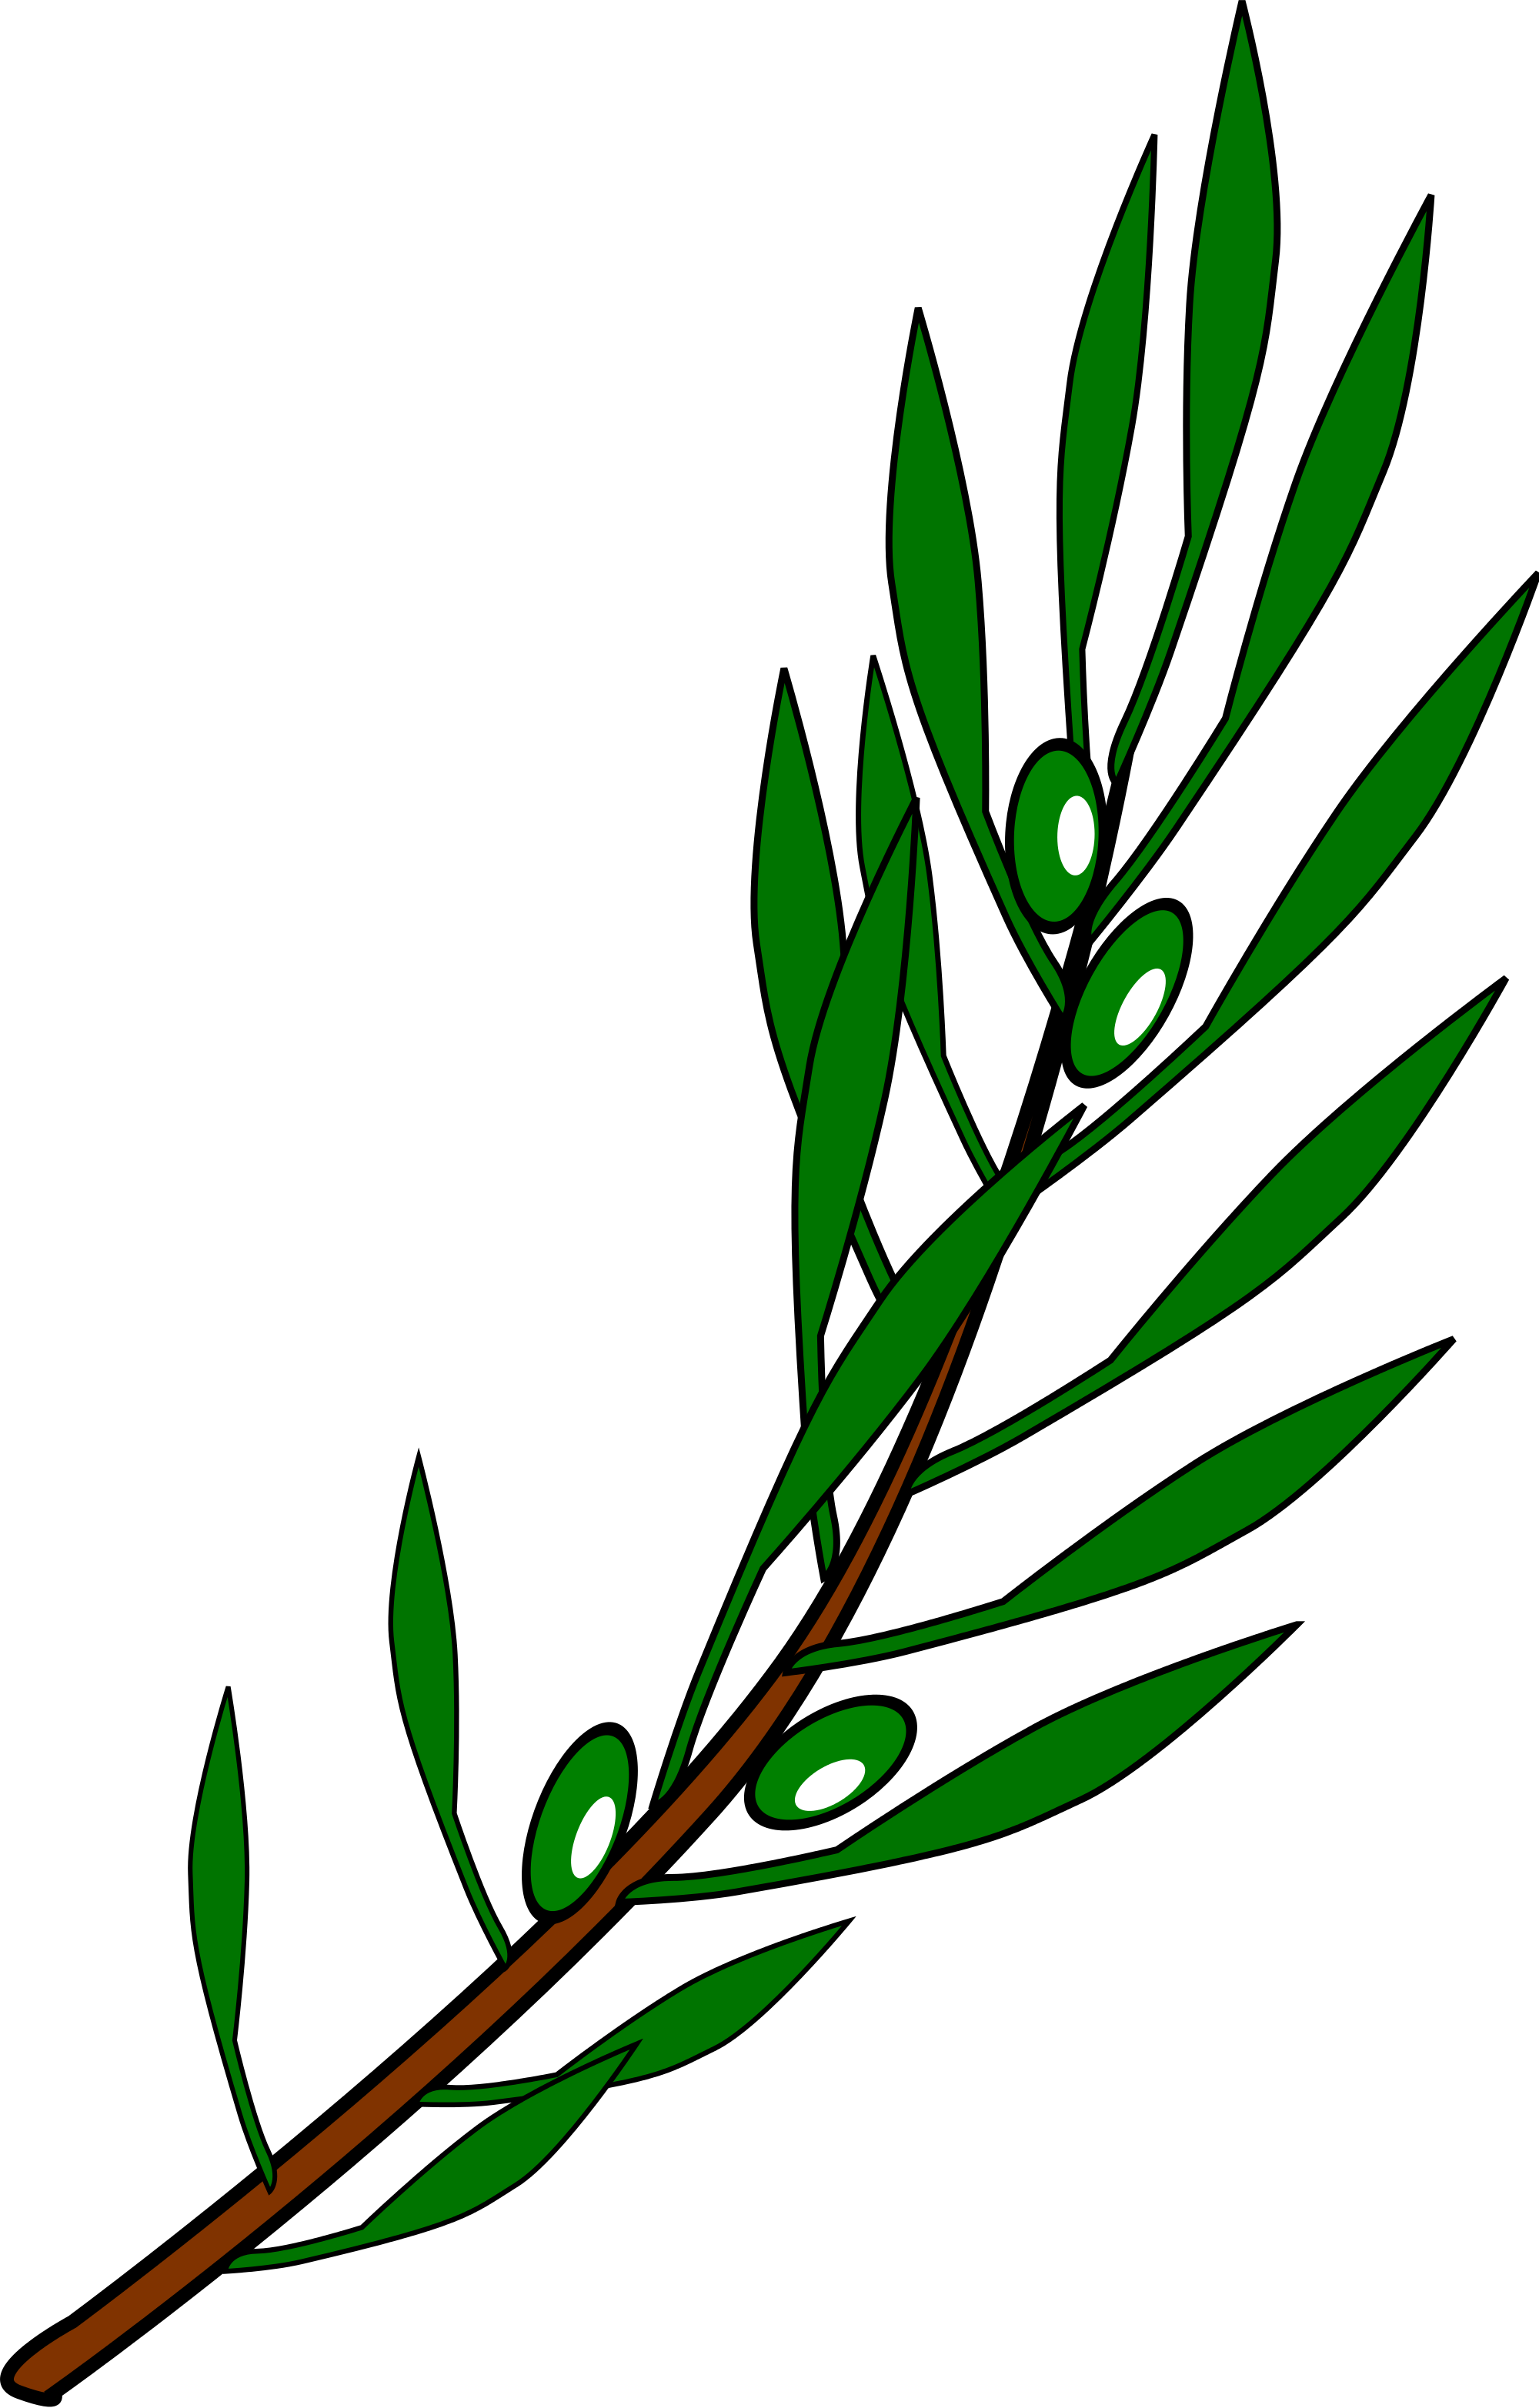 Olive Branch Drawing at GetDrawings.com | Free for personal use ...